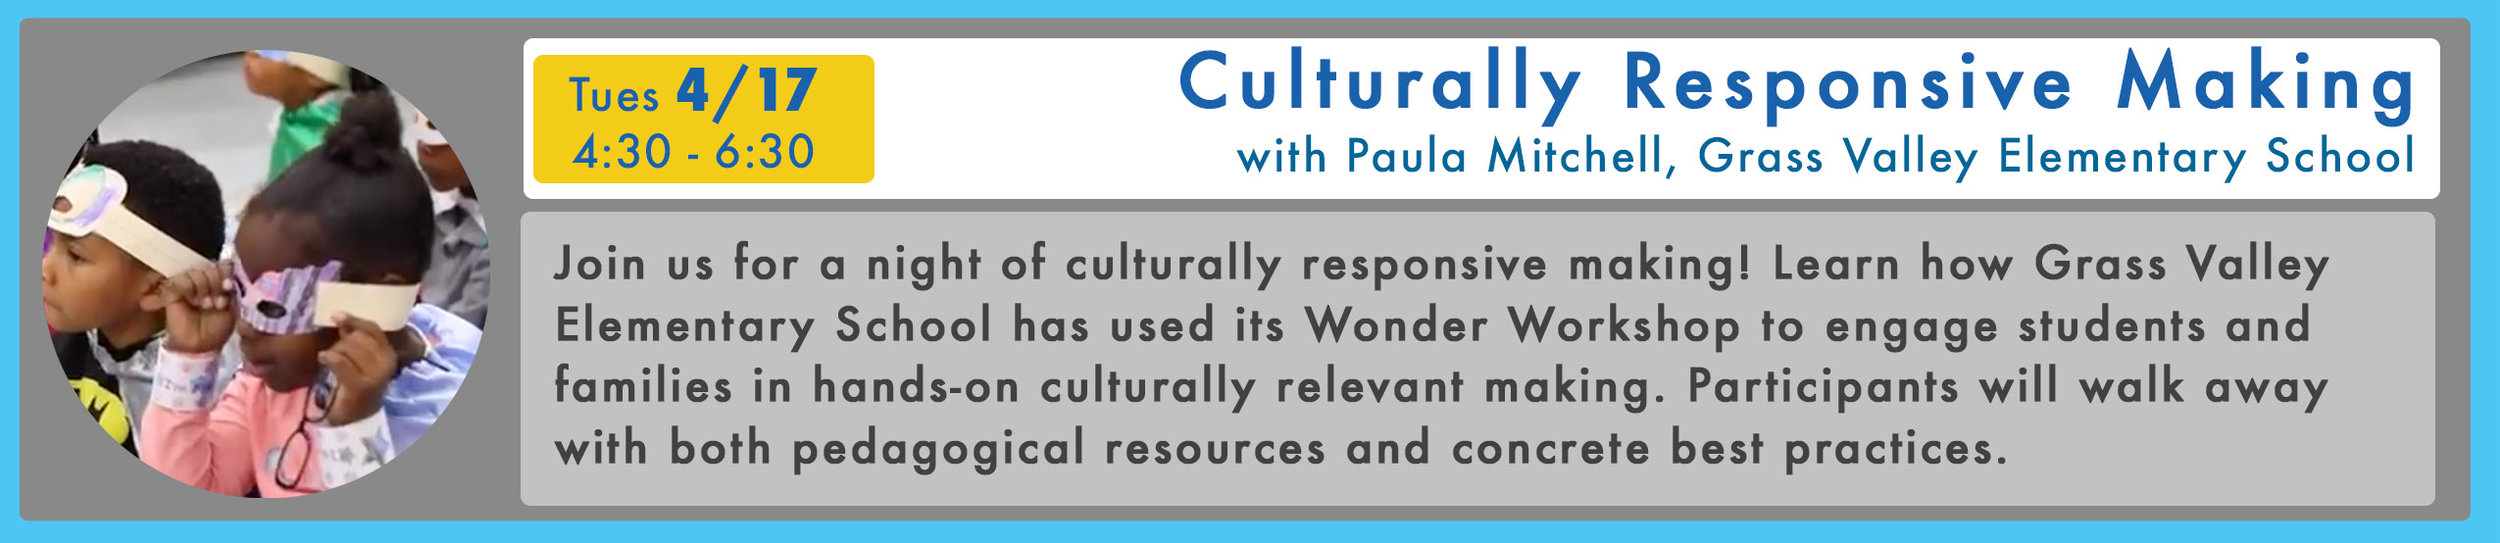 RSVP here  for Culturally Responsive Making